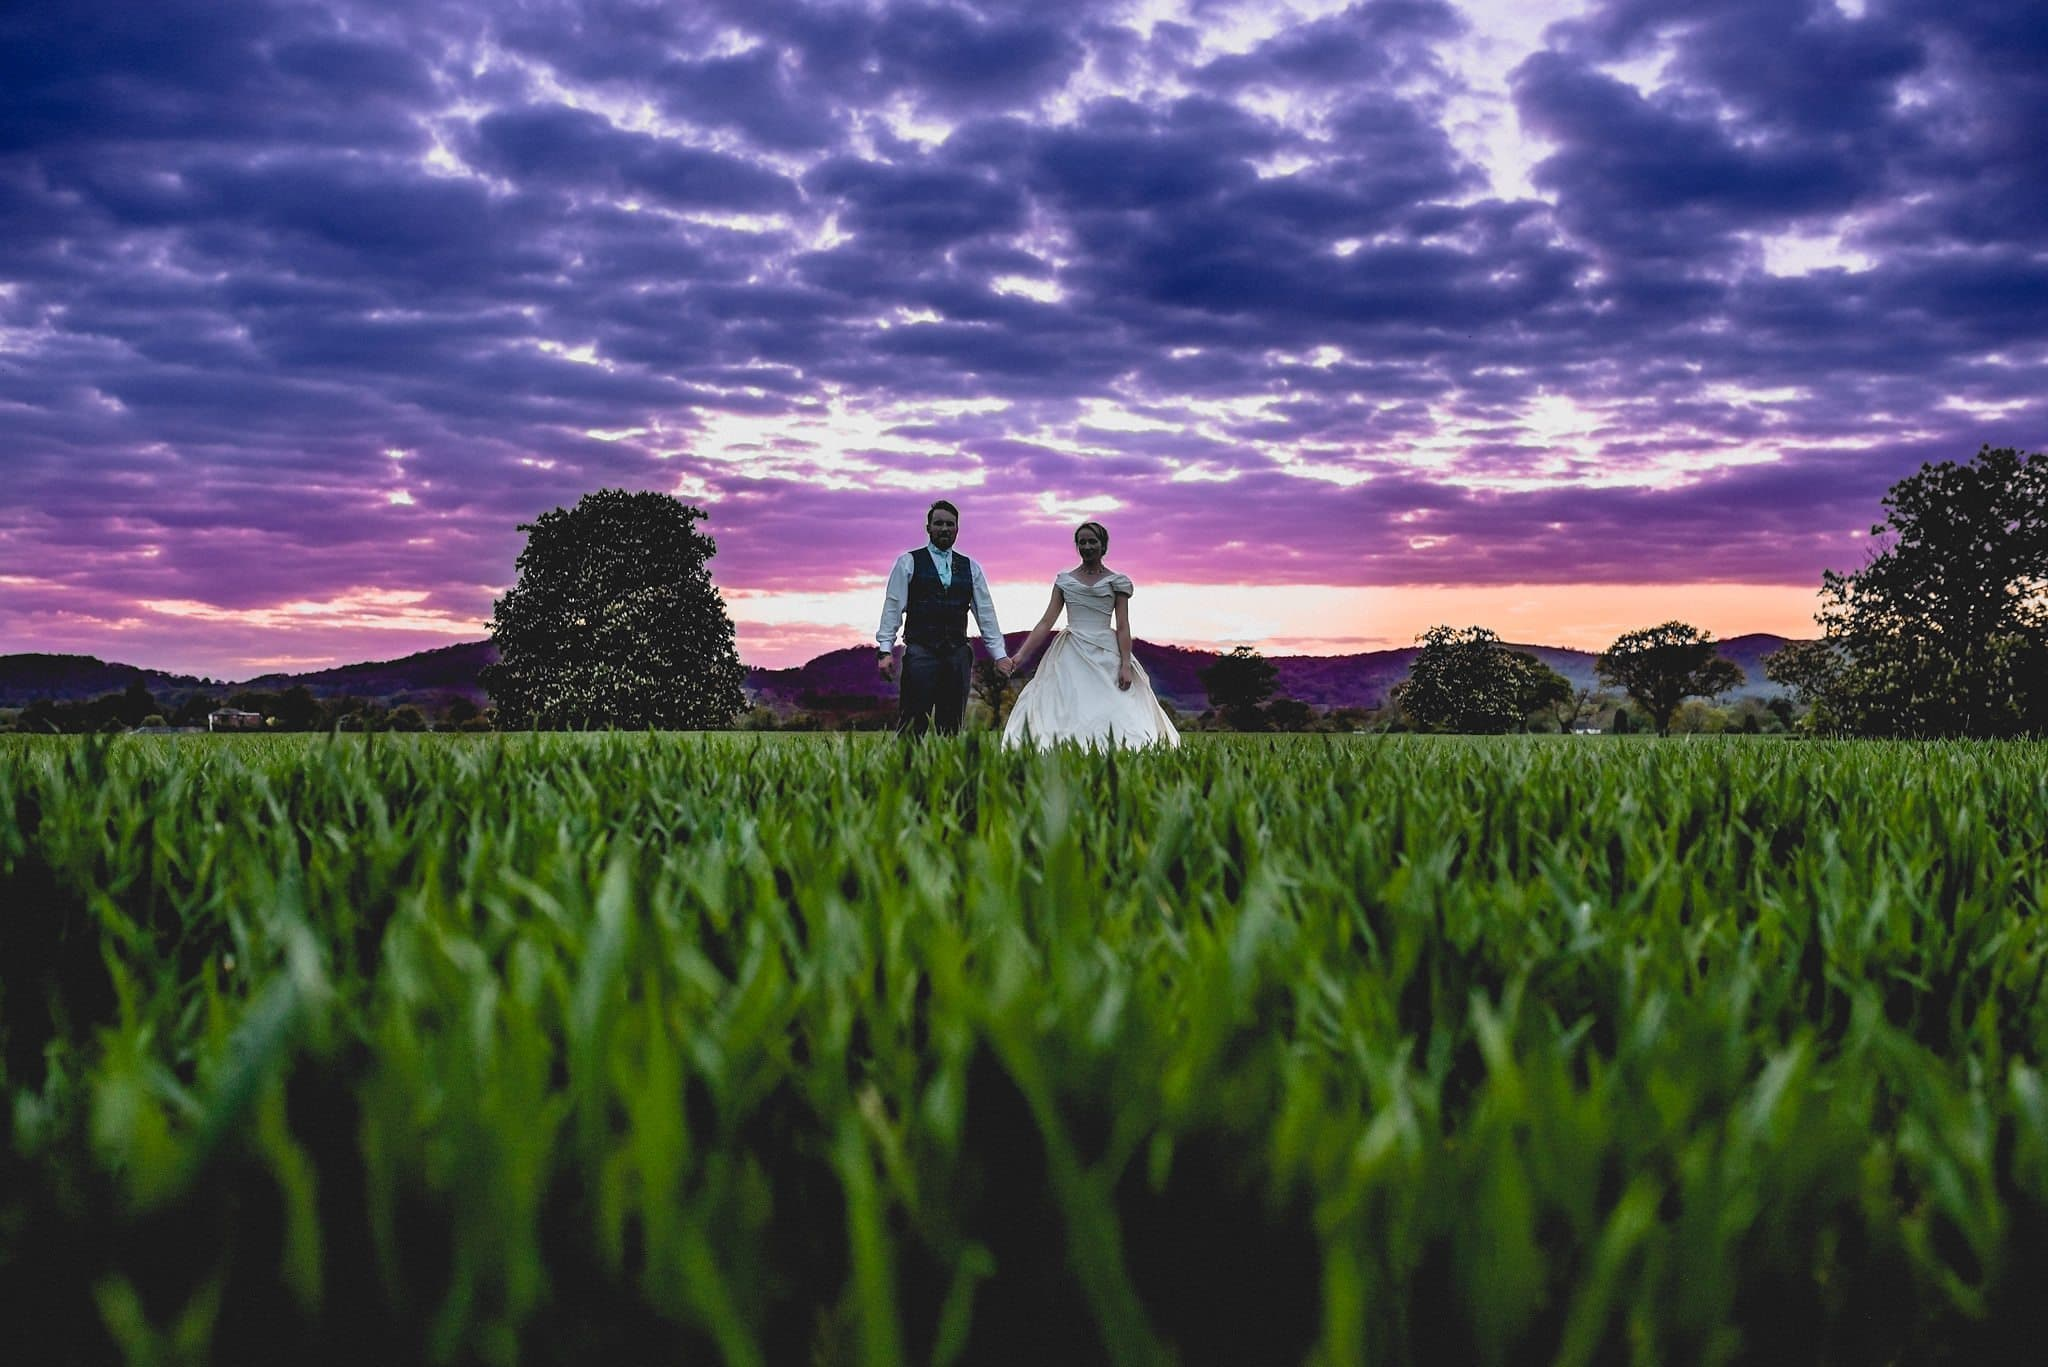 The couple stand in the long grass, hand in hand at sunset. The clouds look really dramatic in shades of mauve, pink and purple